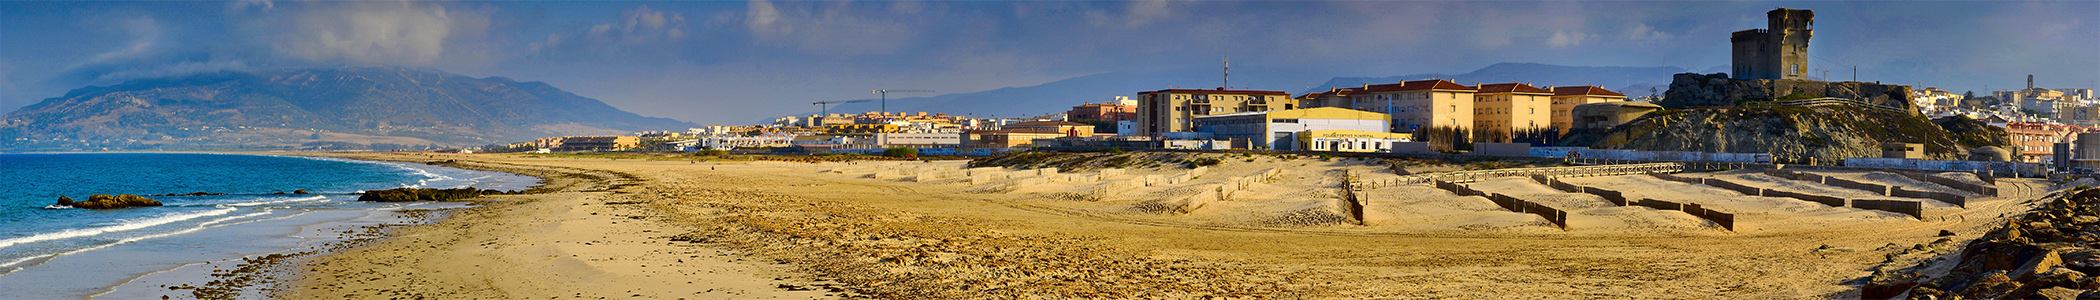 Tarifa in Southern Spain is just across from Tangiers in Morocco…